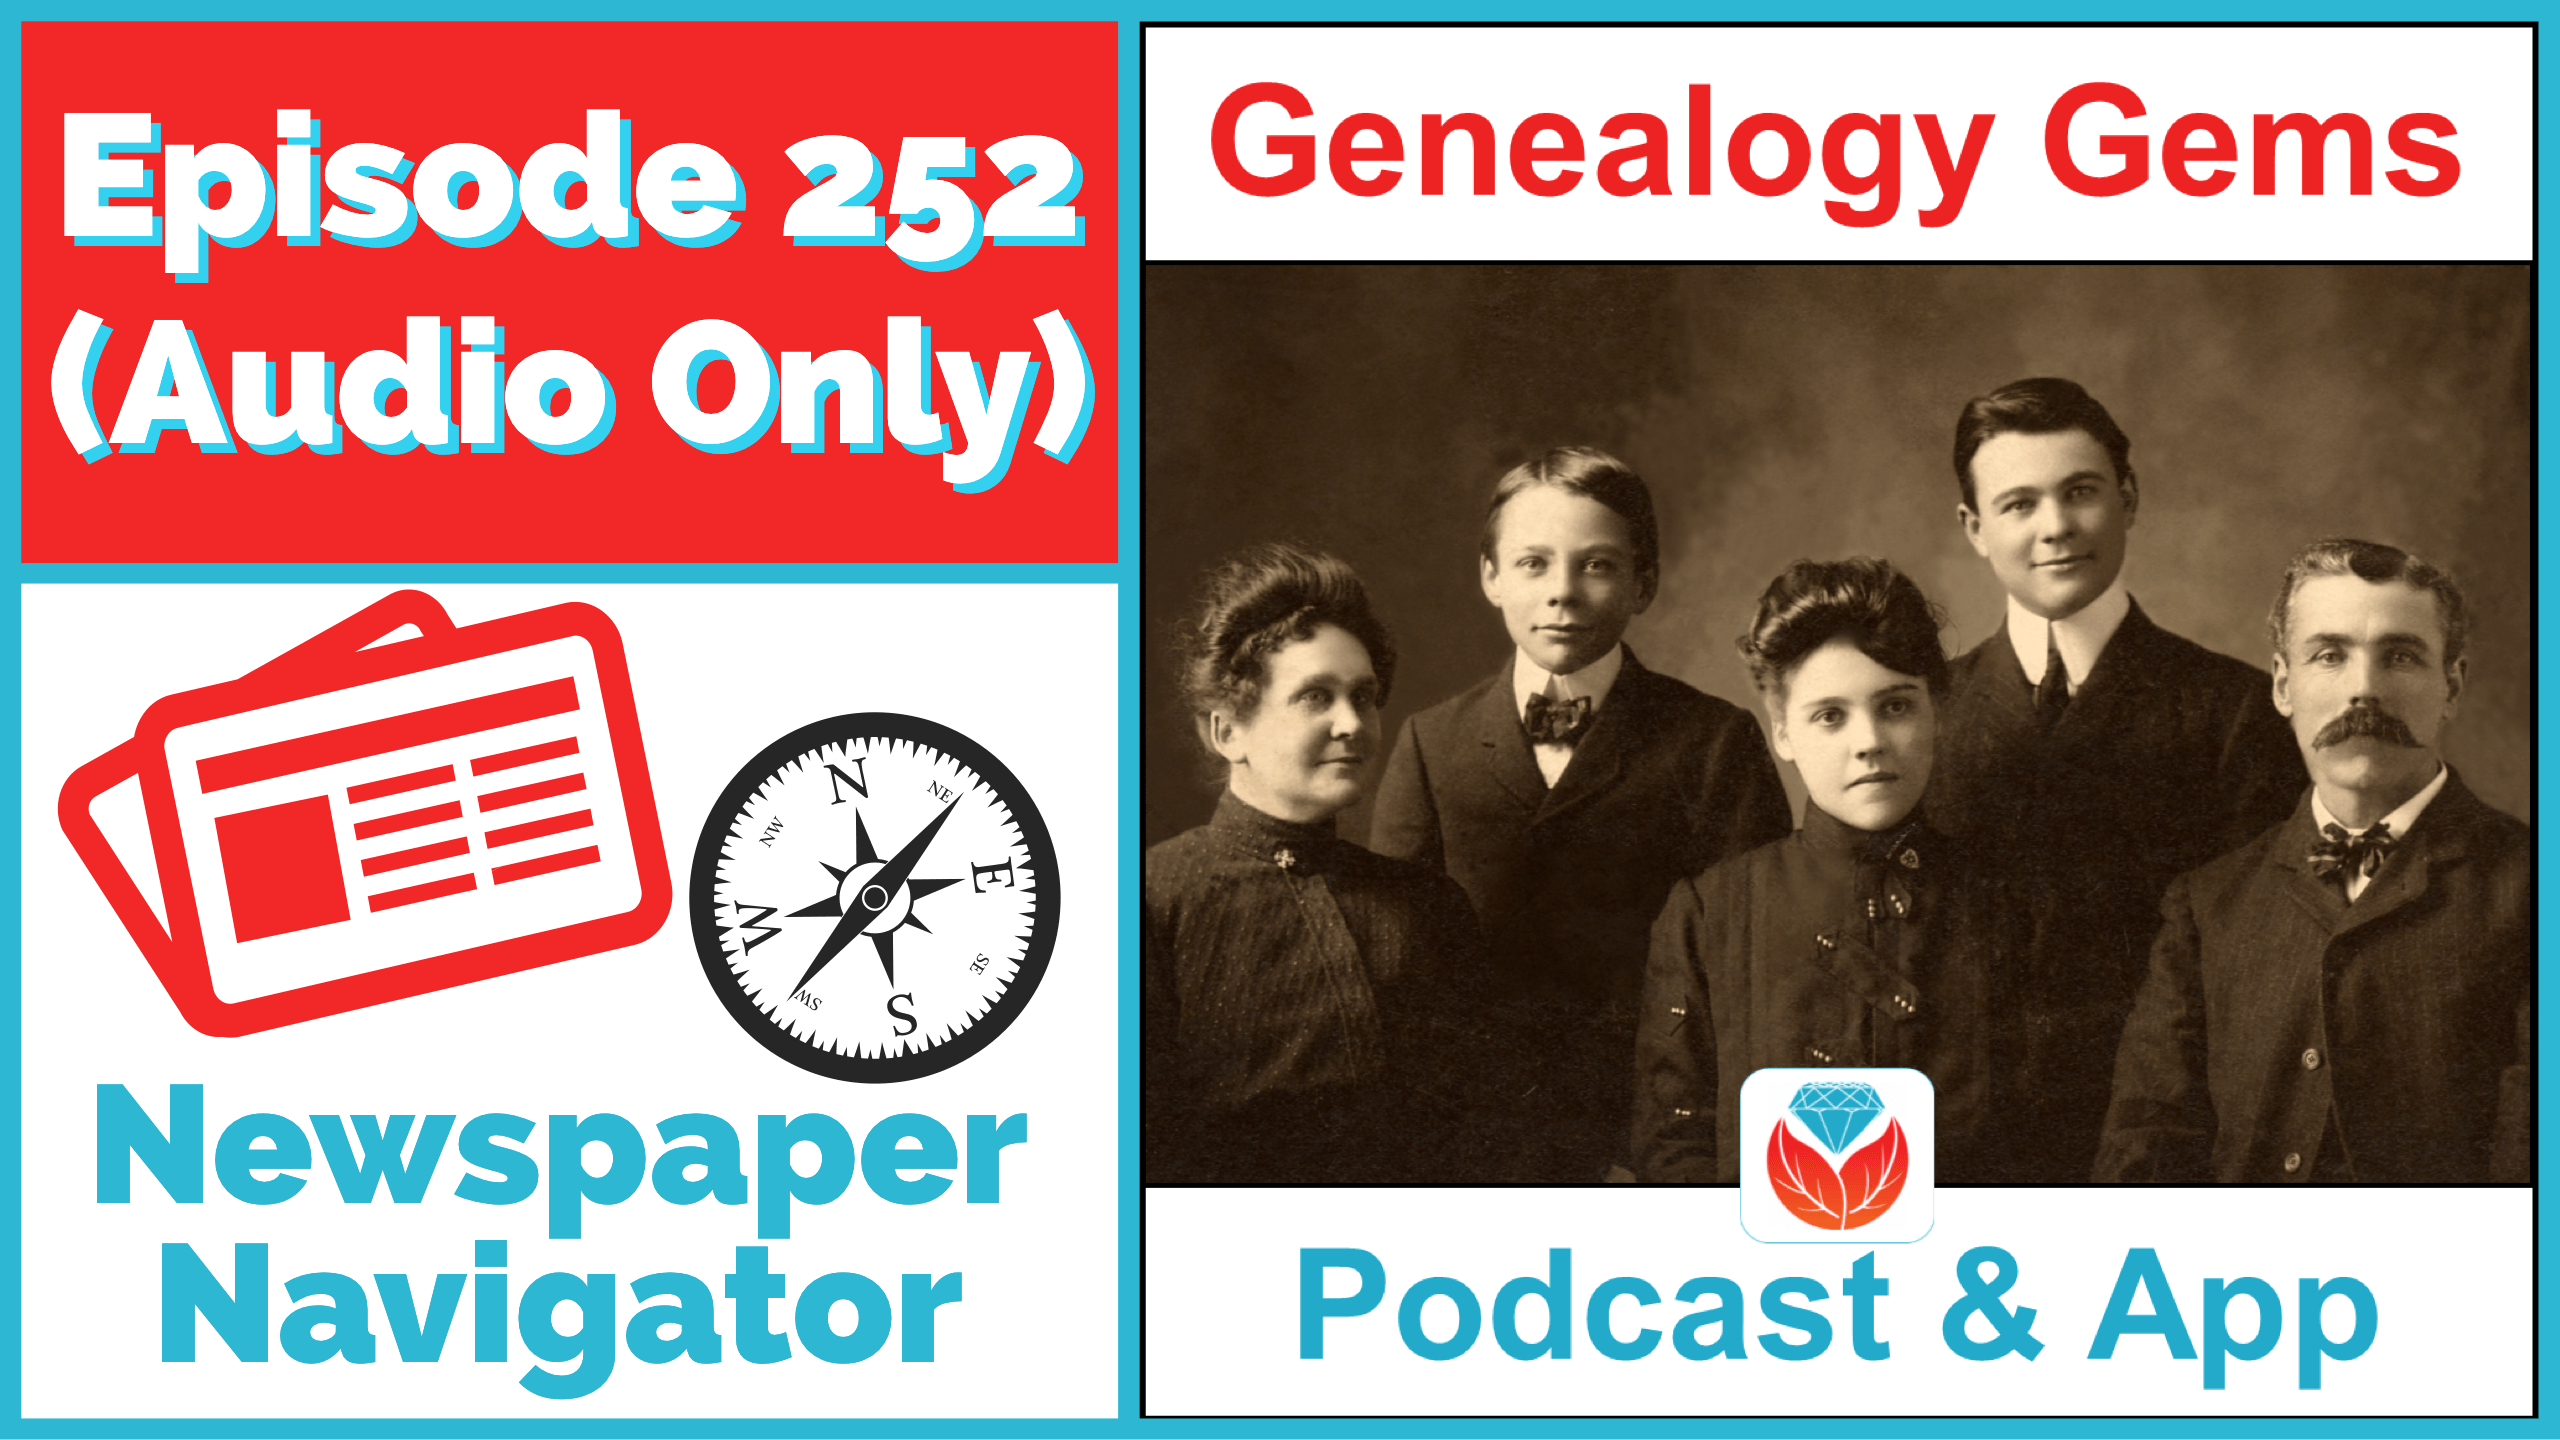 Genealogy Gems Podcast Episode 252